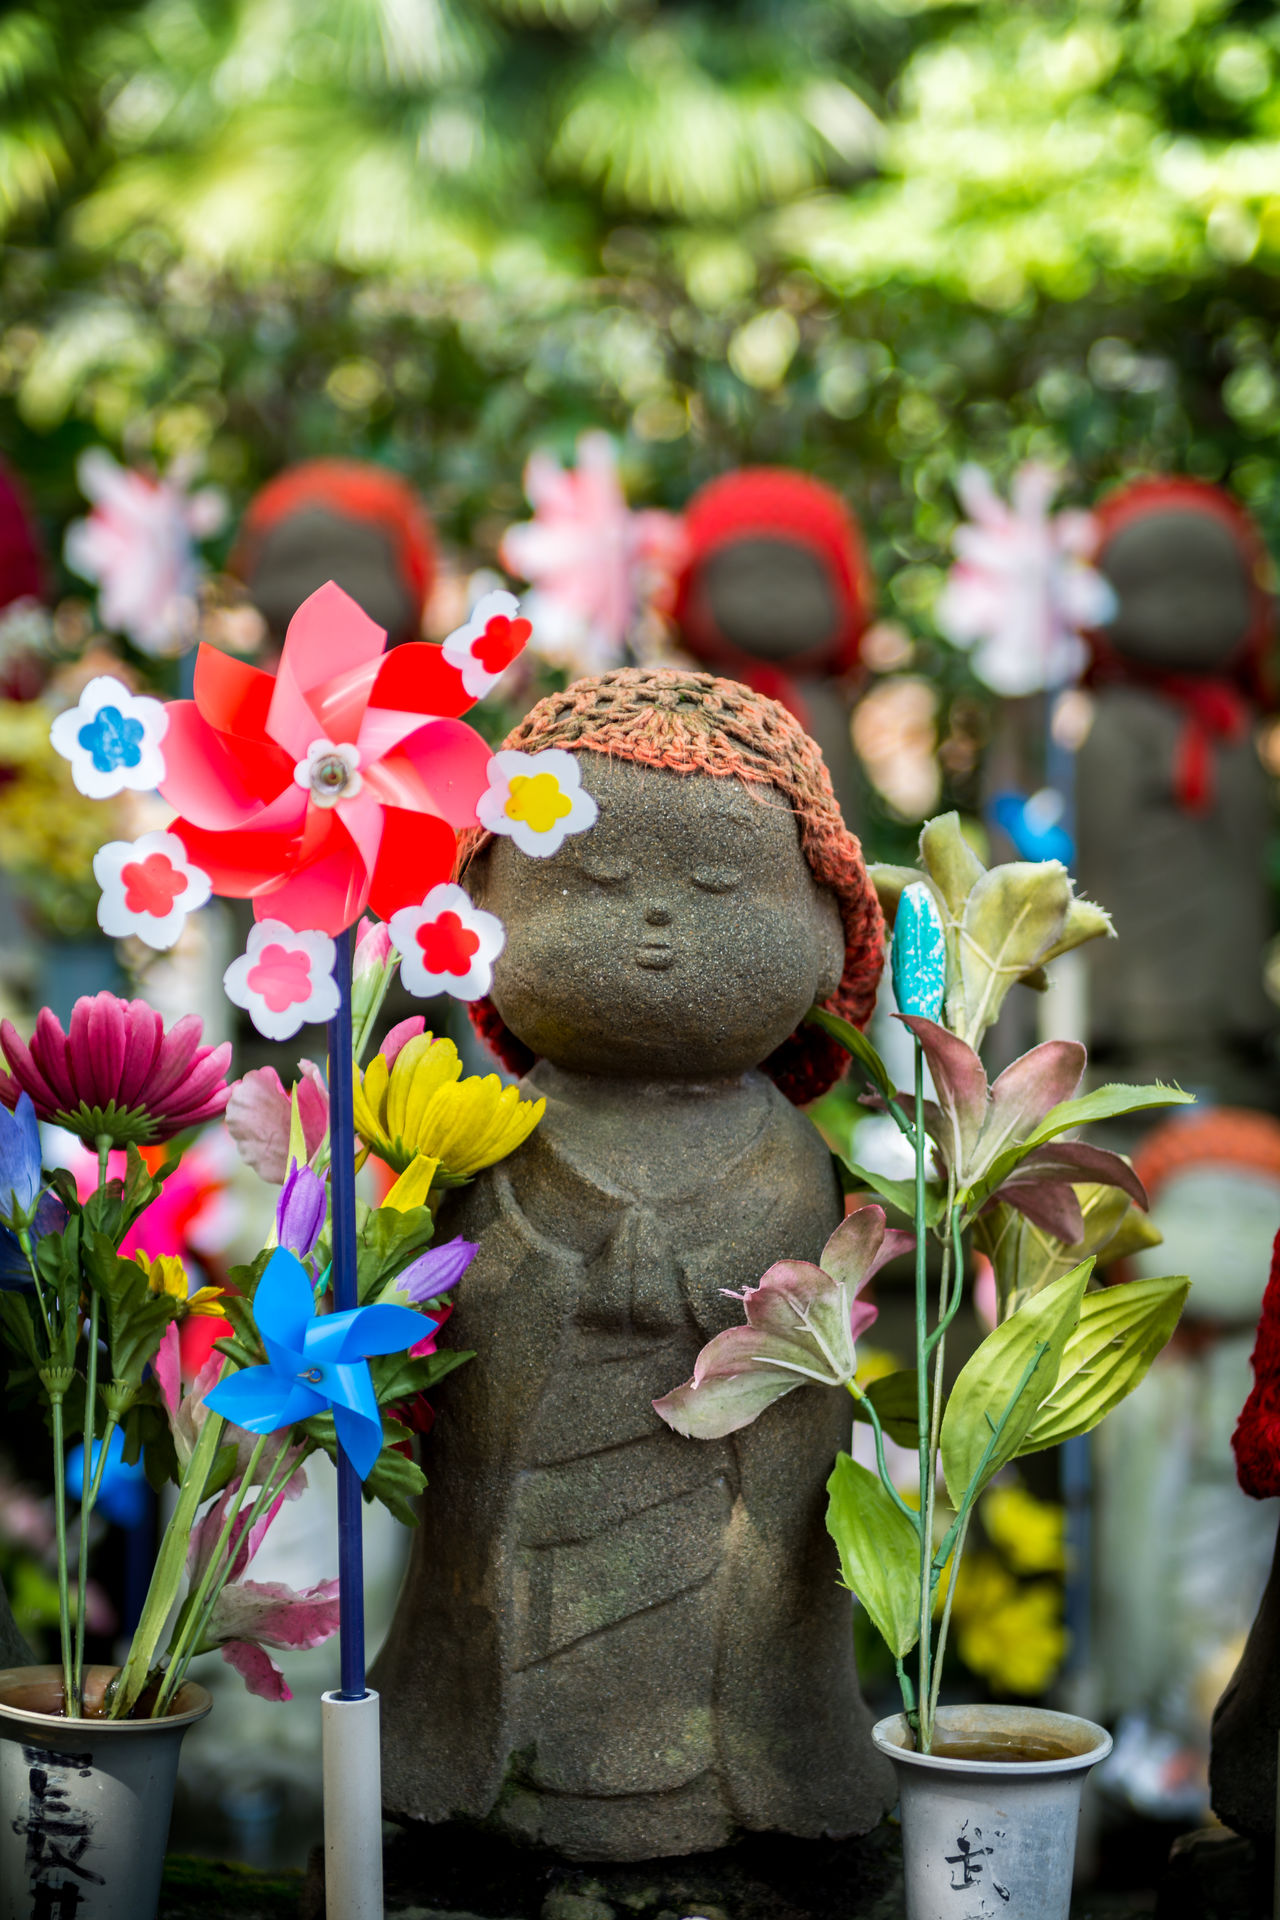 Zojo Ji Tokyo Buddha Buddhism Colors Faith Flower Japan Japanese  JI Monk  Religion Shrine Temple Tokyo Tokyo Tower Zojoji Zojojitemple